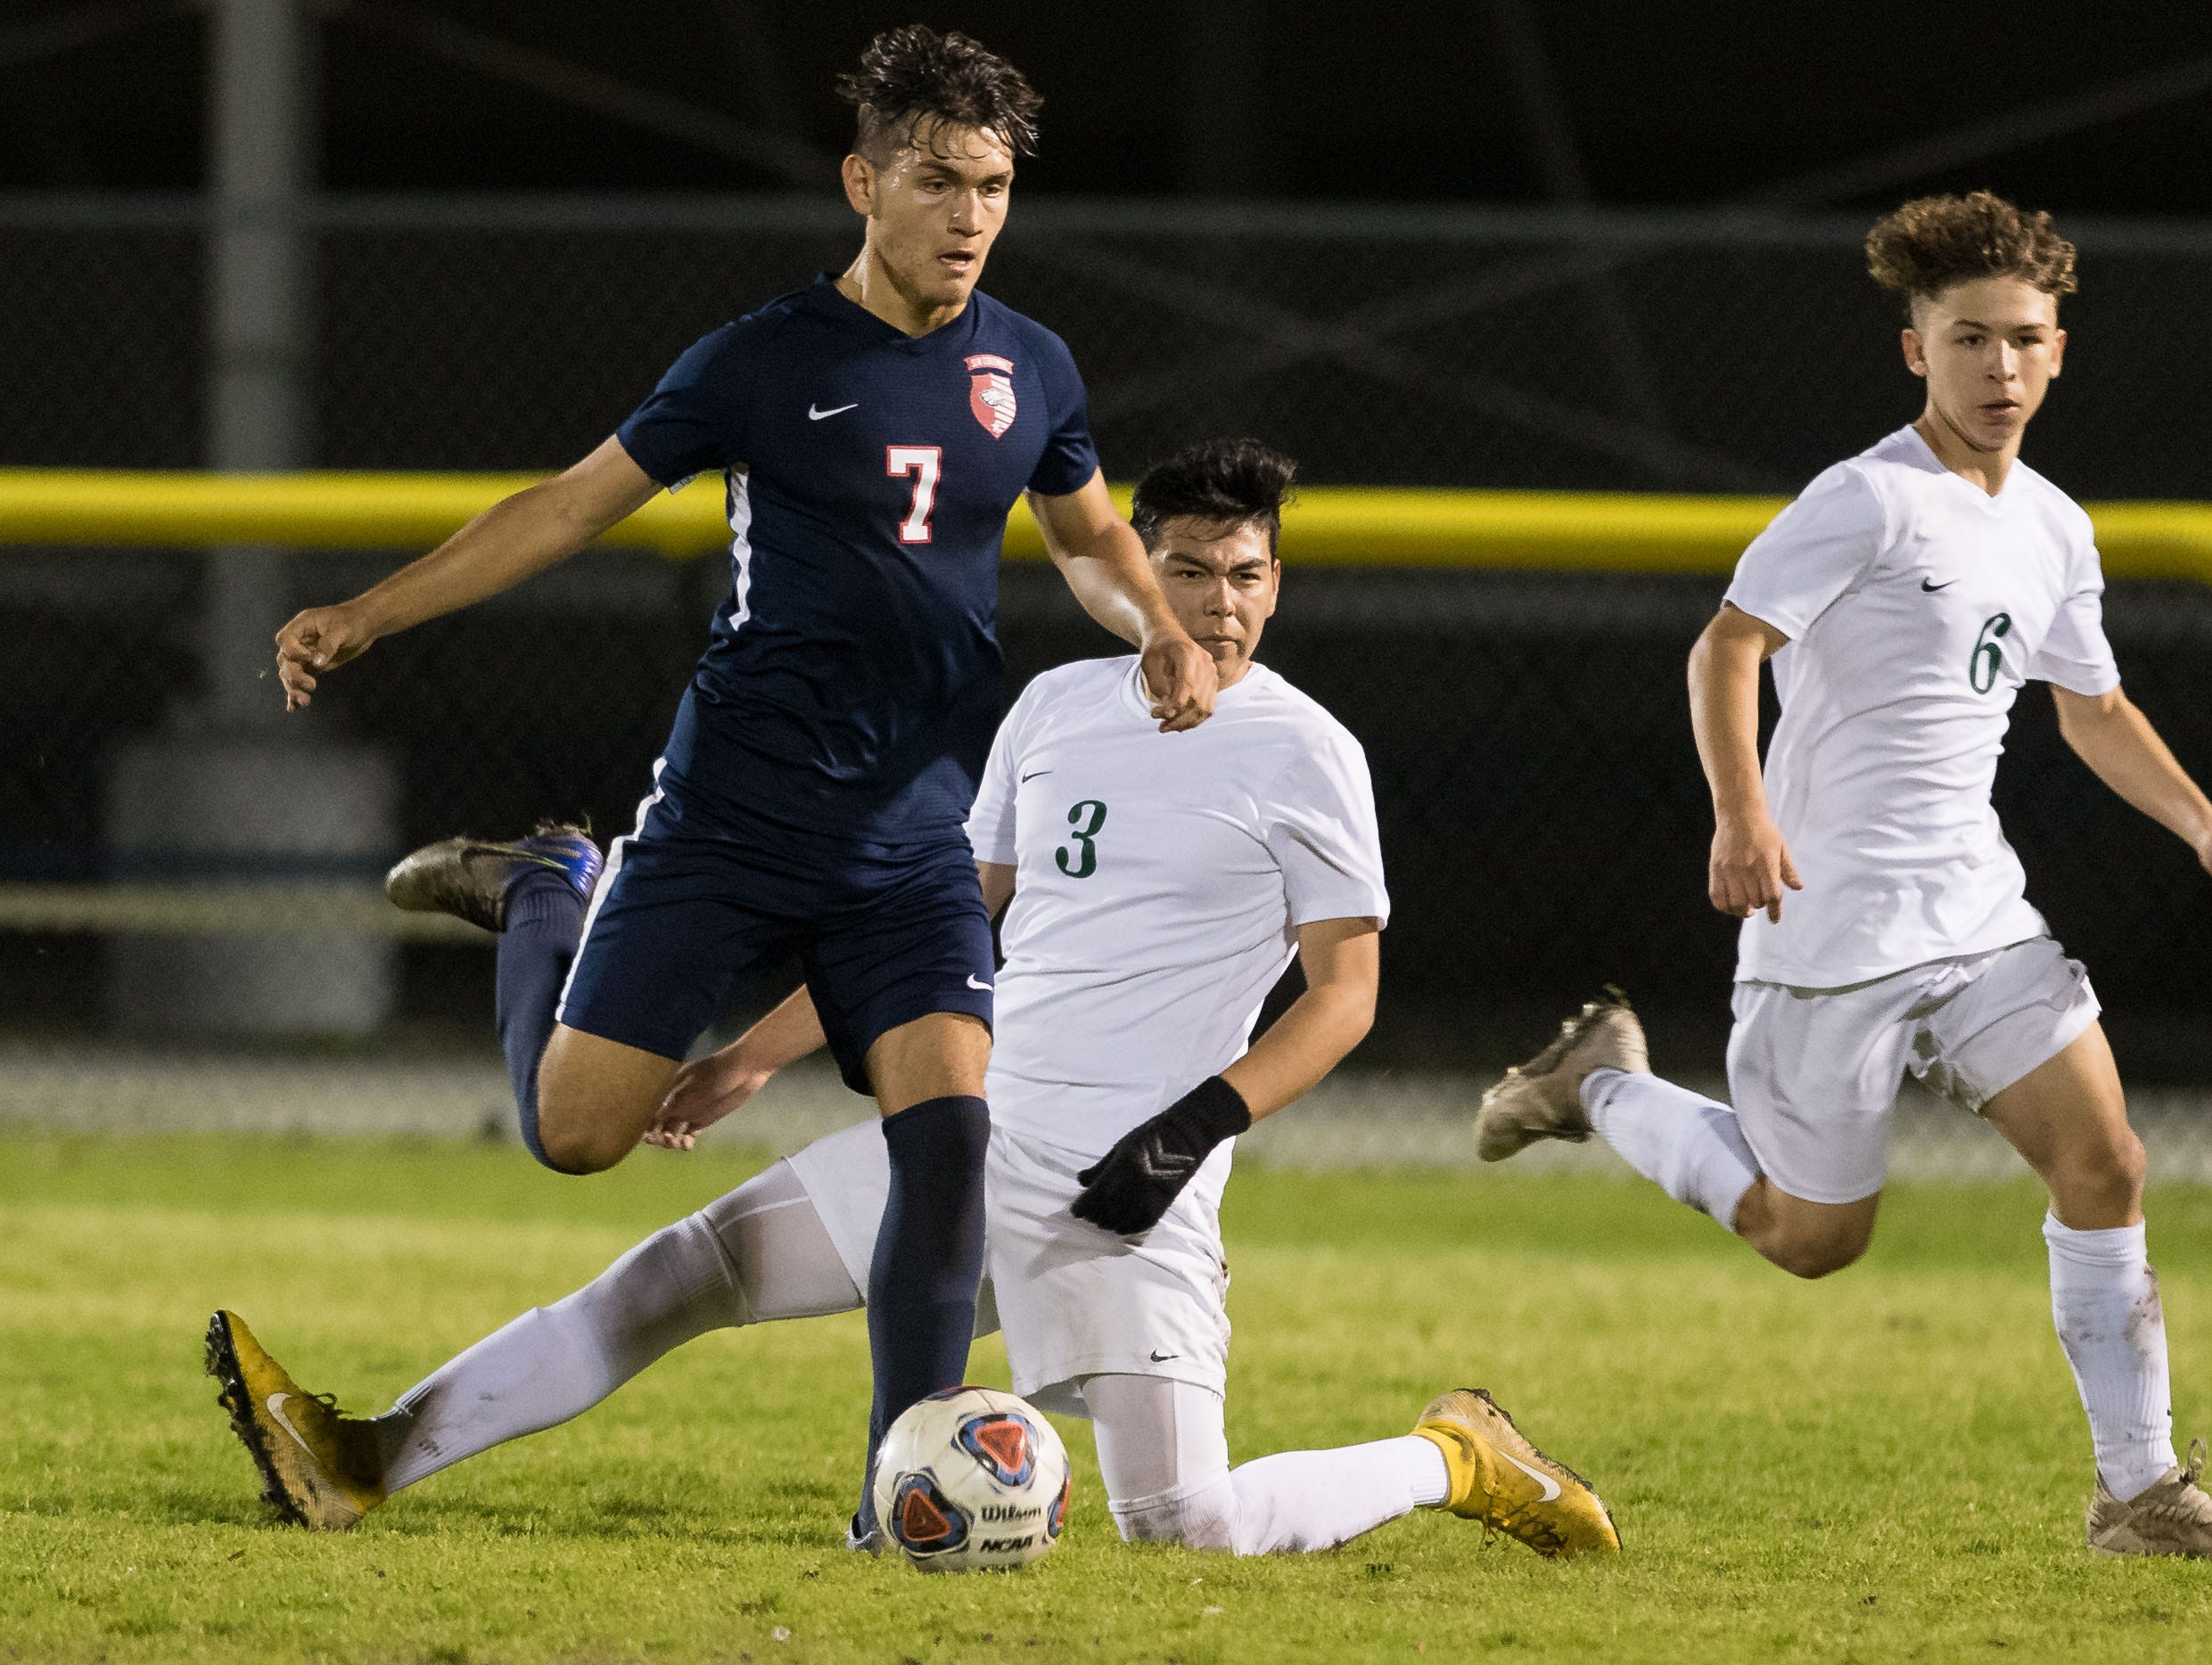 St. Lucie West Centennial plays against Jupiter during the high school boys soccer District 10-5A championship game Friday, Feb. 1, 2019, at South County Regional Stadium in Port St. Lucie.